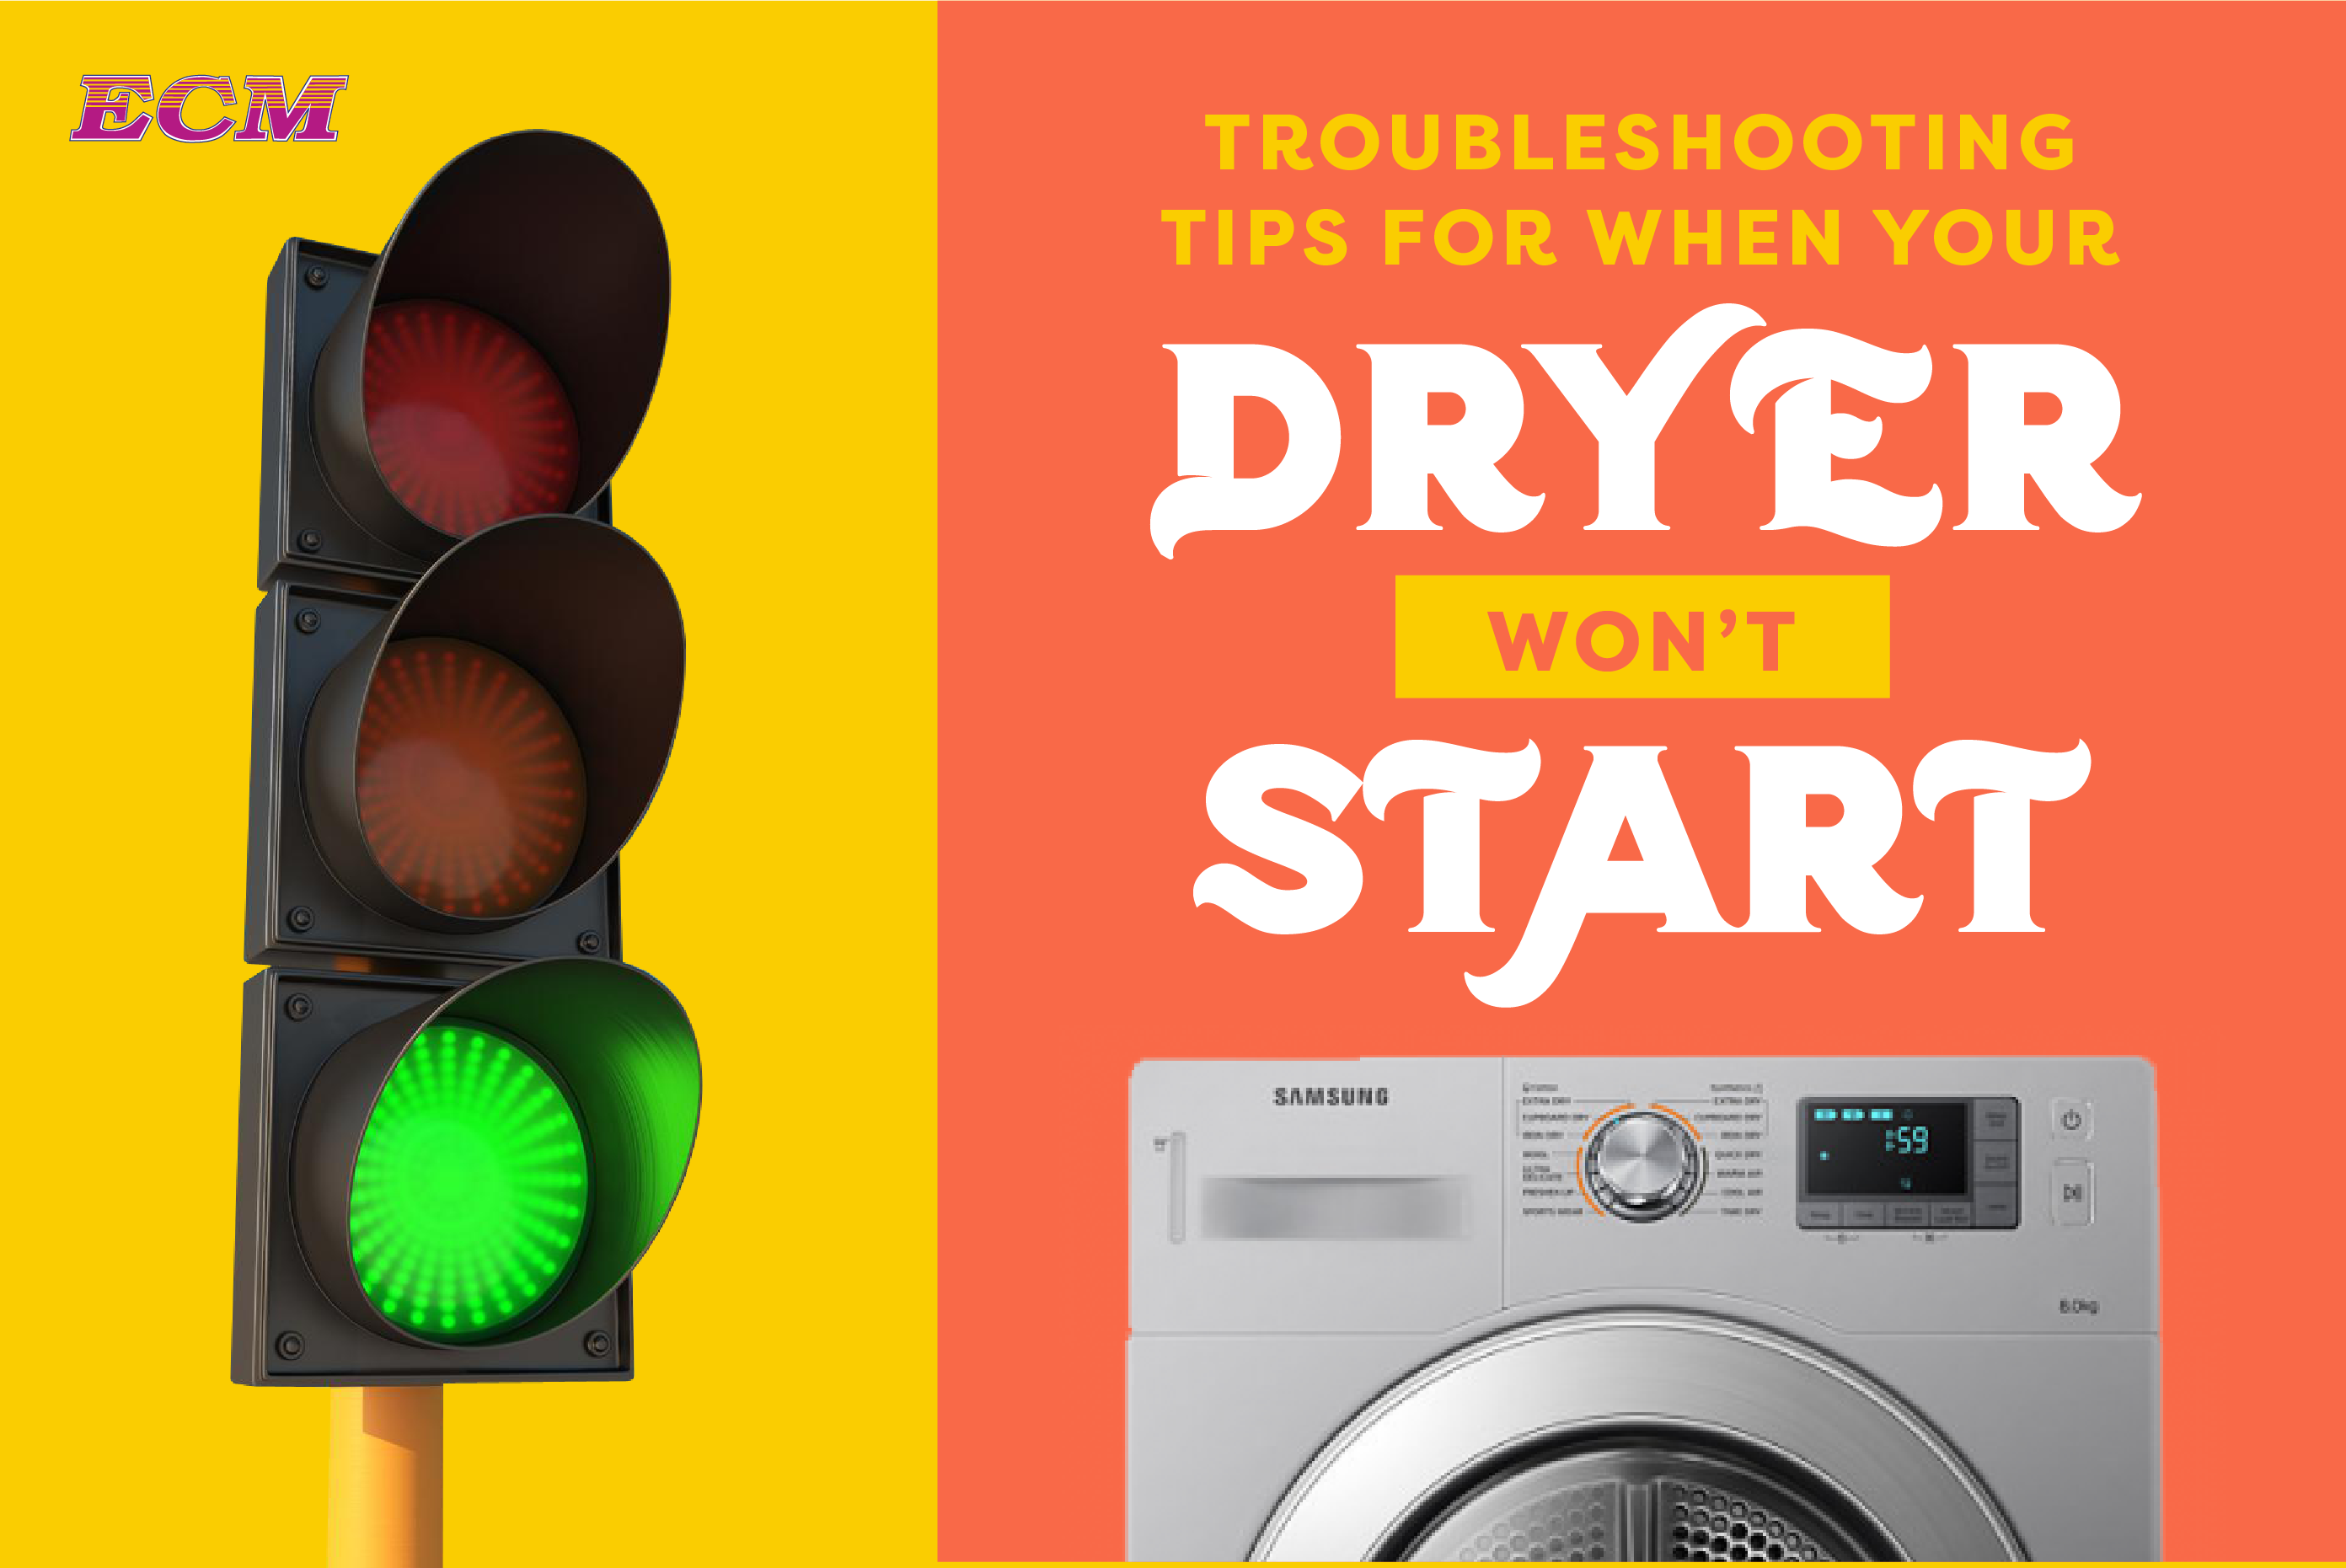 Troubleshooting Tips When Your Dryer Won't Start